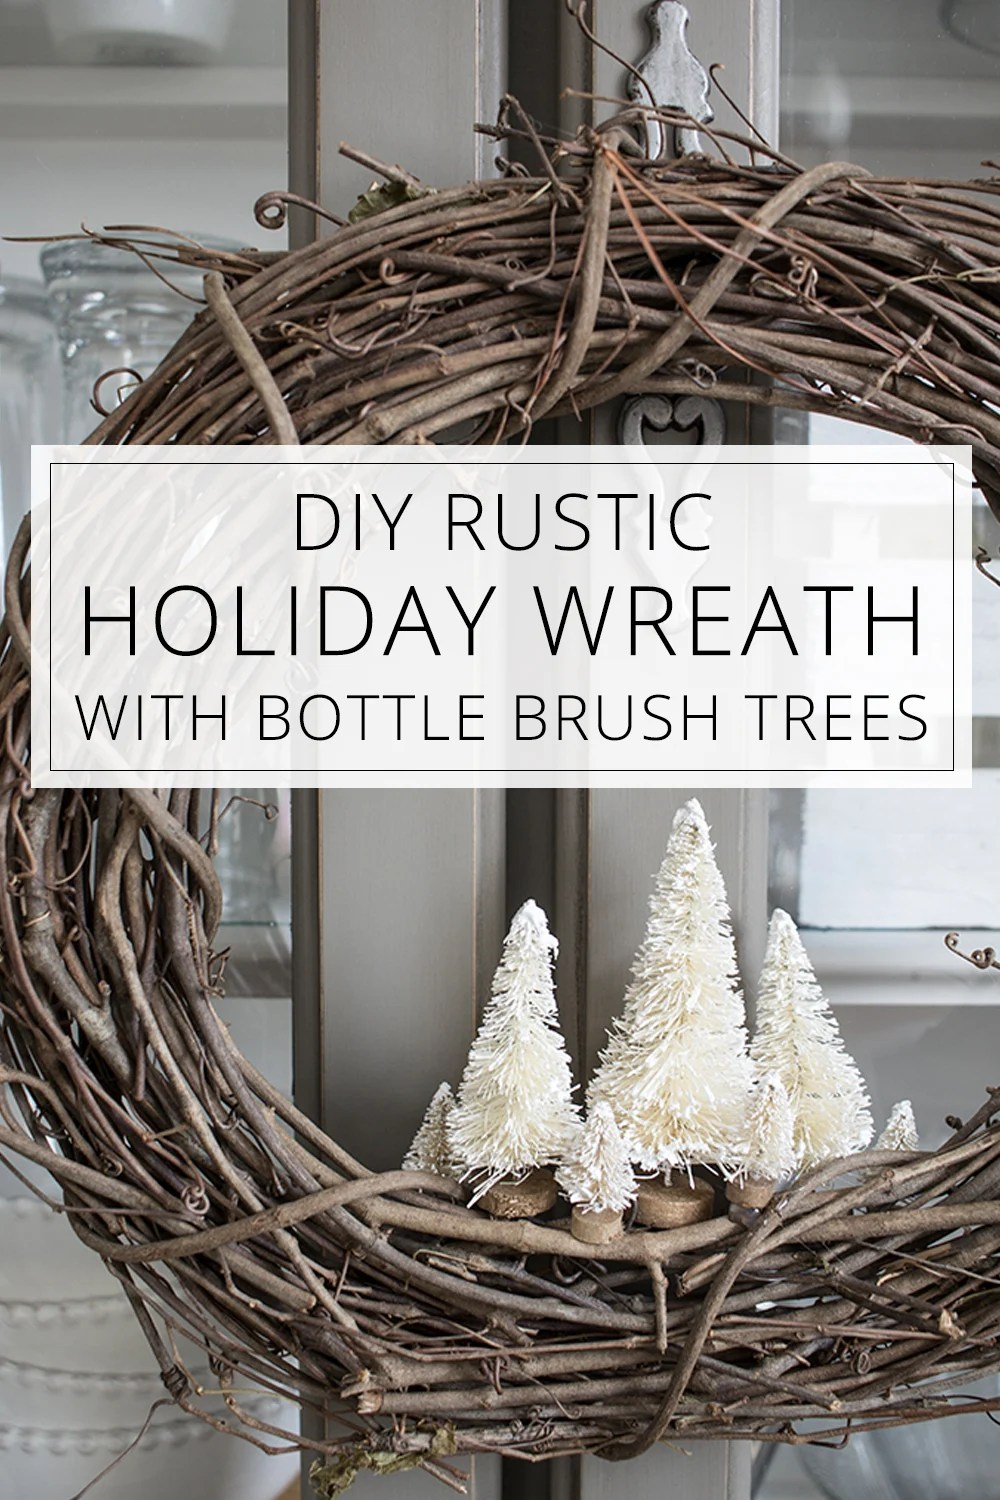 Rustic Christmas Wreath Diy.How To Make A Simple Diy Christmas Wreath With Bottle Brush